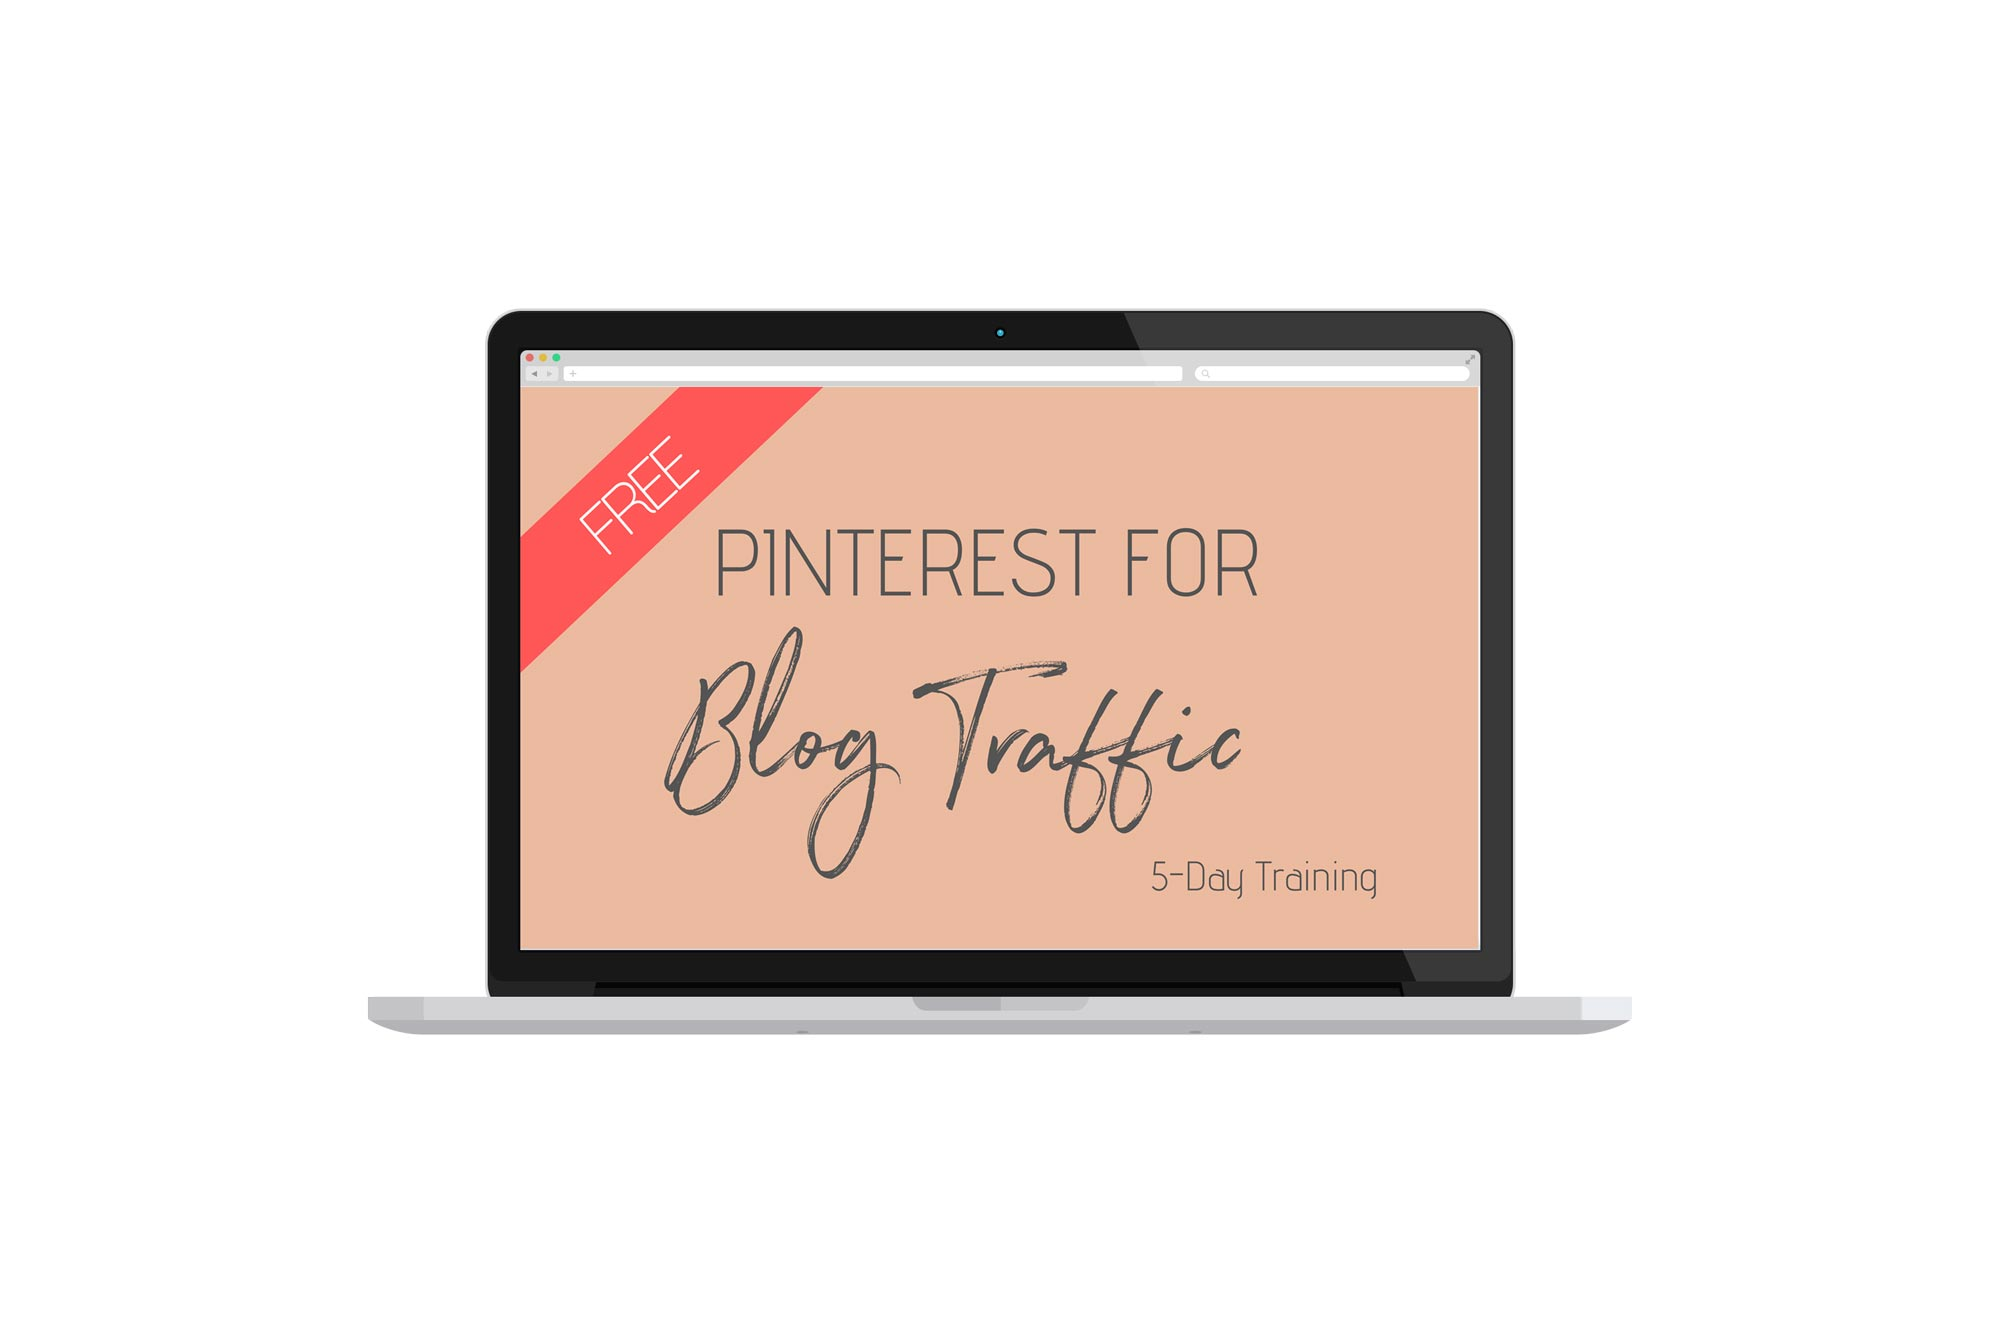 Learn in the FREE 5-Day training how to grow your blog traffic with Pinterst via lillaliptak.com #bloggingforbeginners #blogtraffictips #blogtraffic #blogtrafficpinterest #blogtips